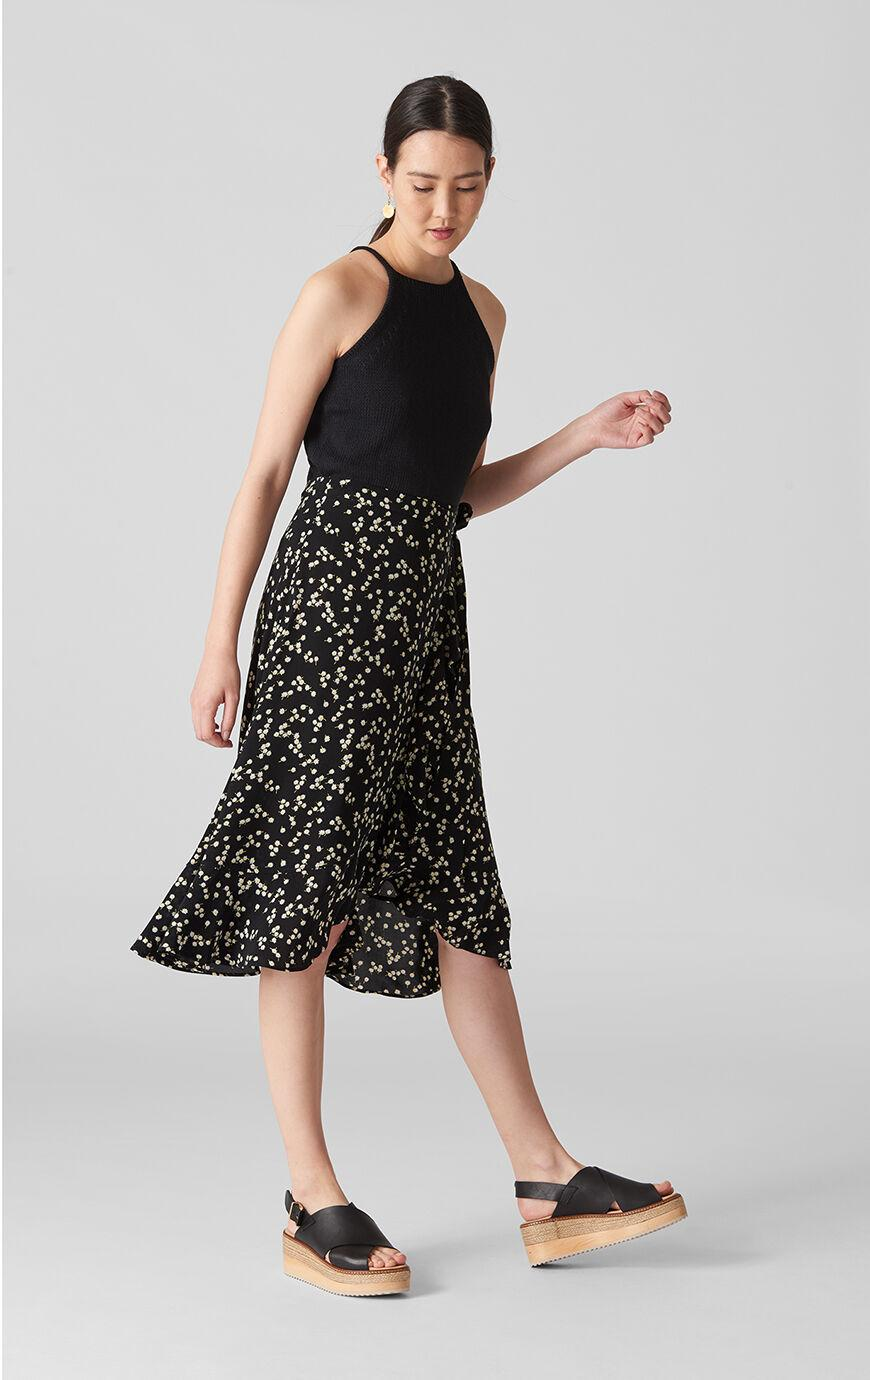 b9a7e5d2cfc4 Whistles Daisy Print Frill Wrap Skirt in Black - Lyst